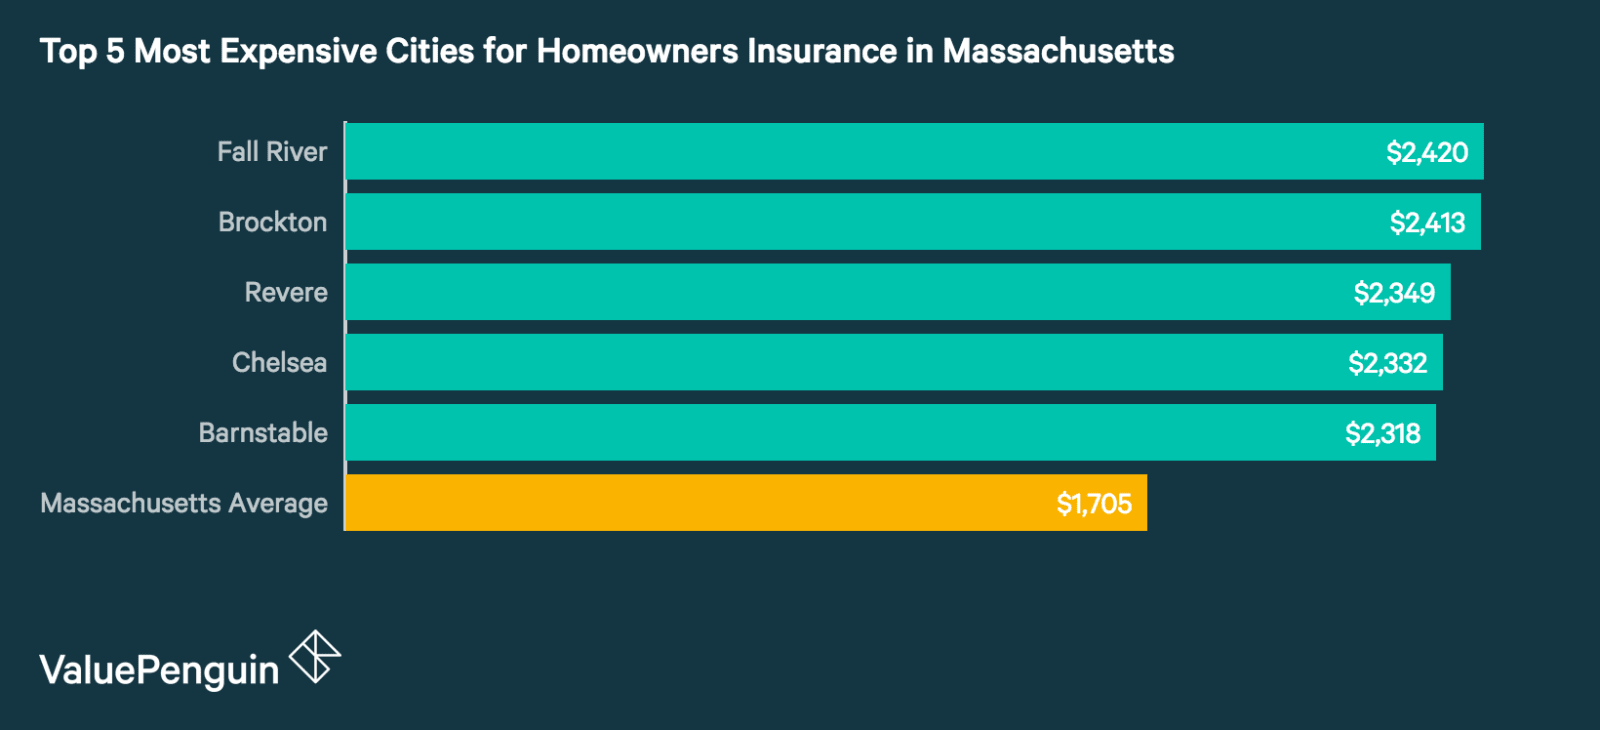 Top 5 Most Expensive Cities in Massachusetts for Homeowners Insurance